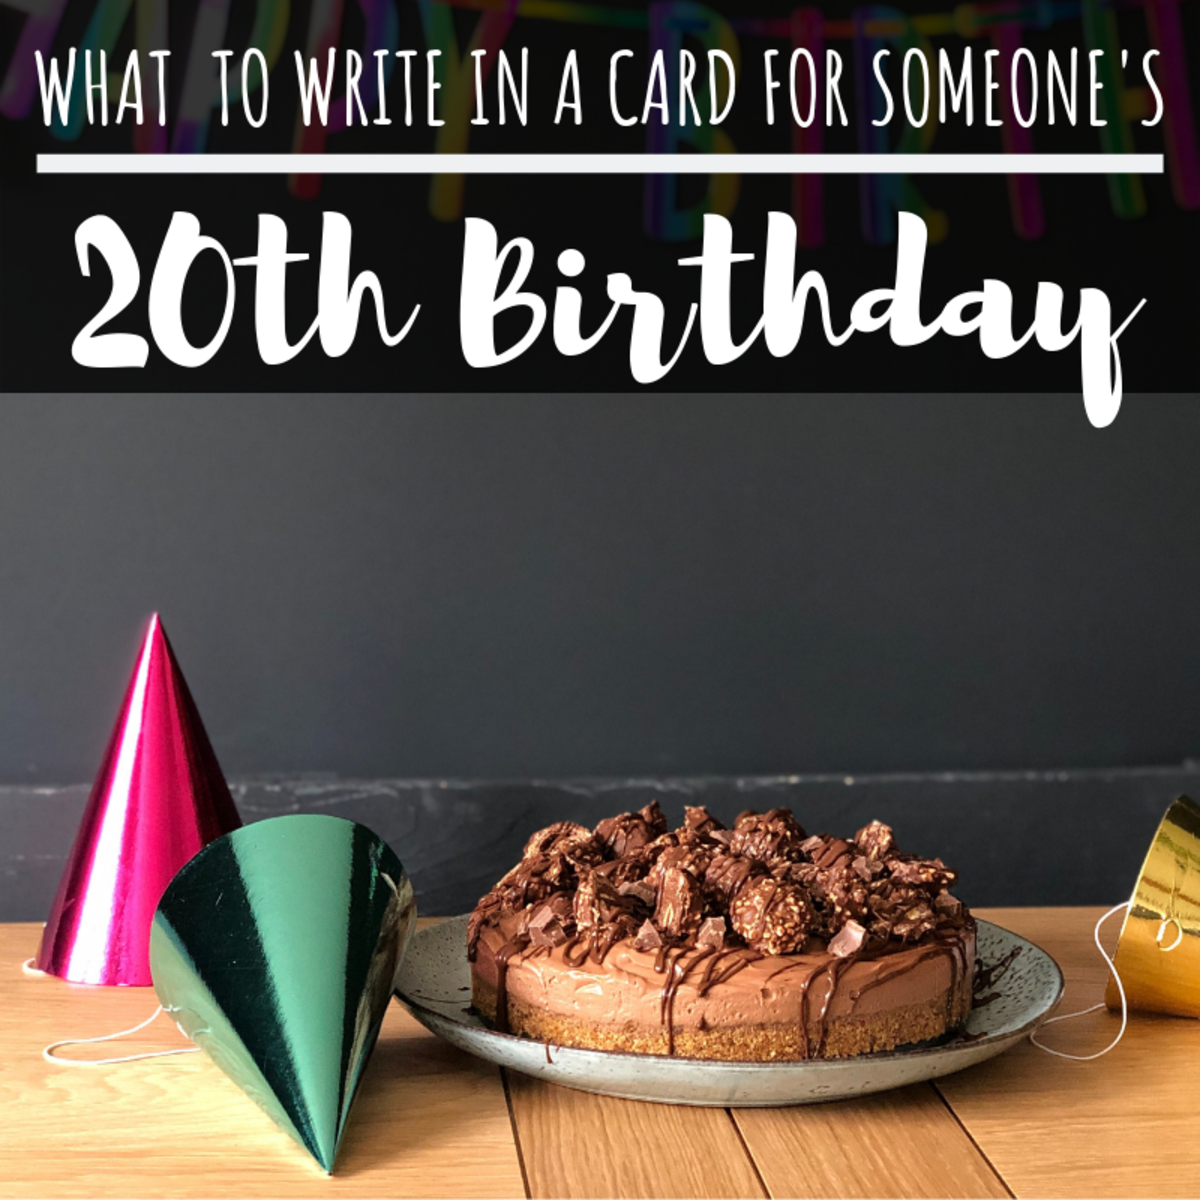 A 20th birthday is a big milestone—here are some quotes, captions, and wishes that celebrate the two-decade mark.